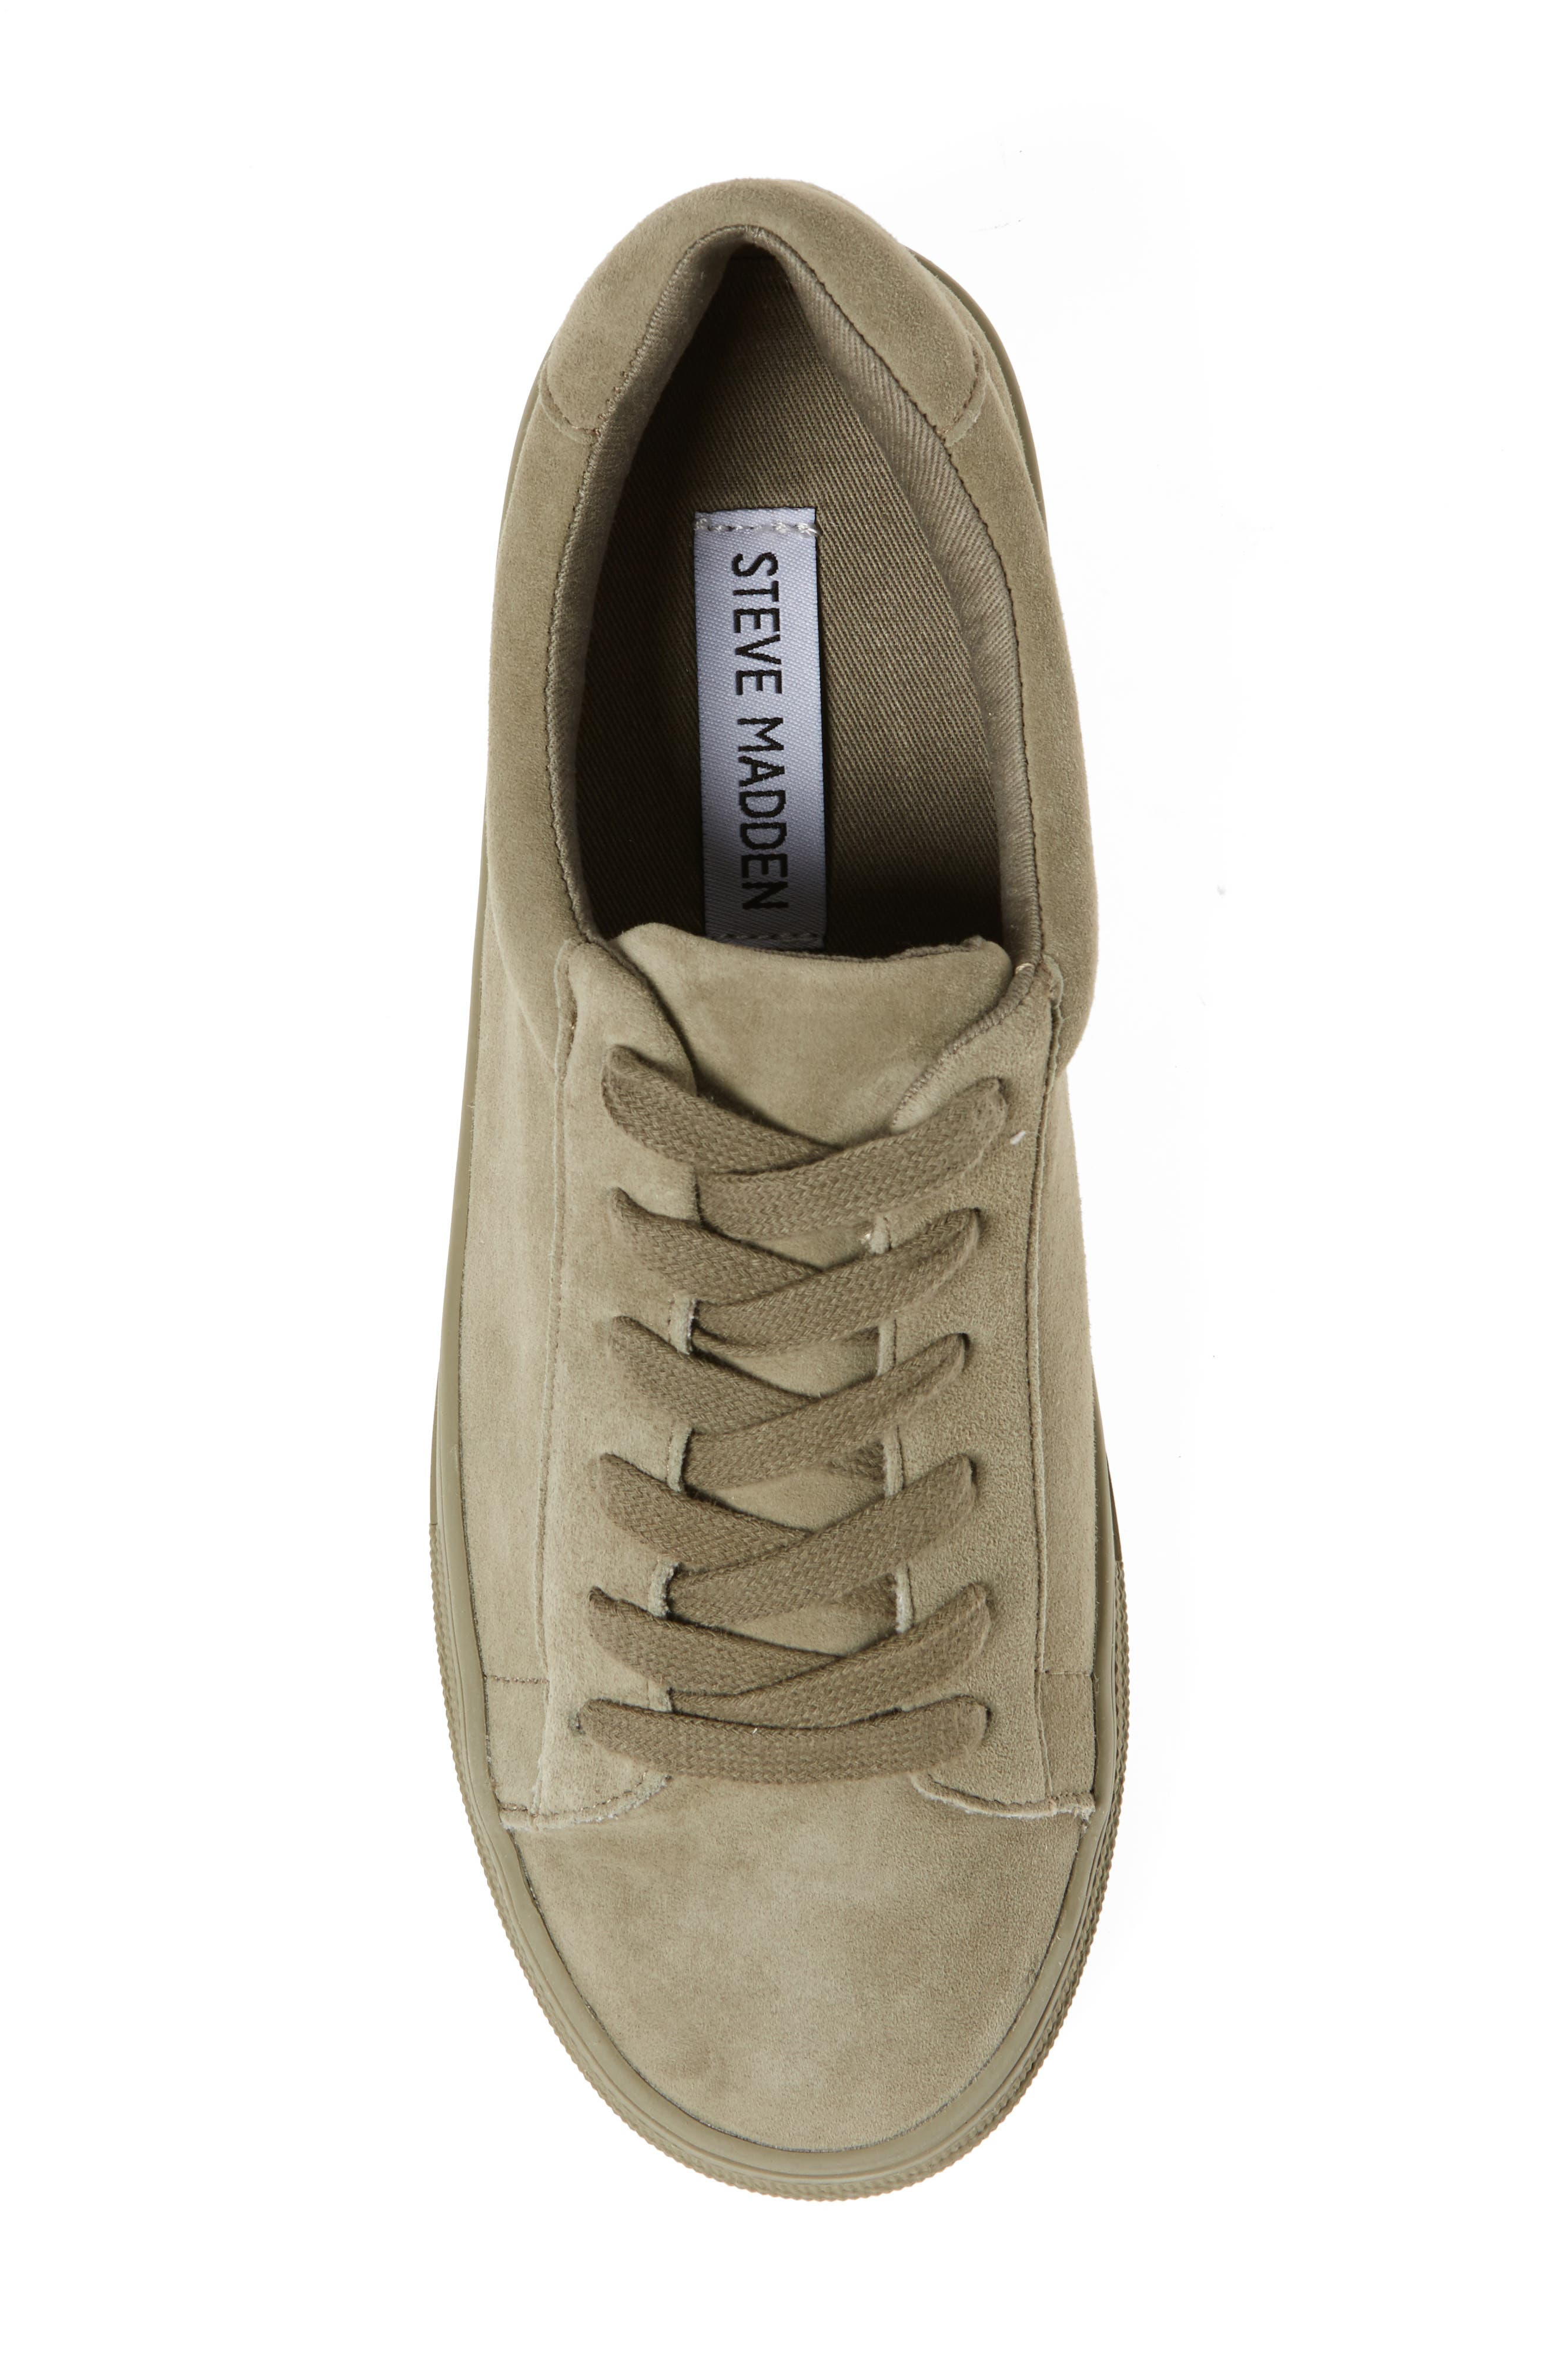 Gisela Low Top Sneaker,                             Alternate thumbnail 5, color,                             Olive Suede